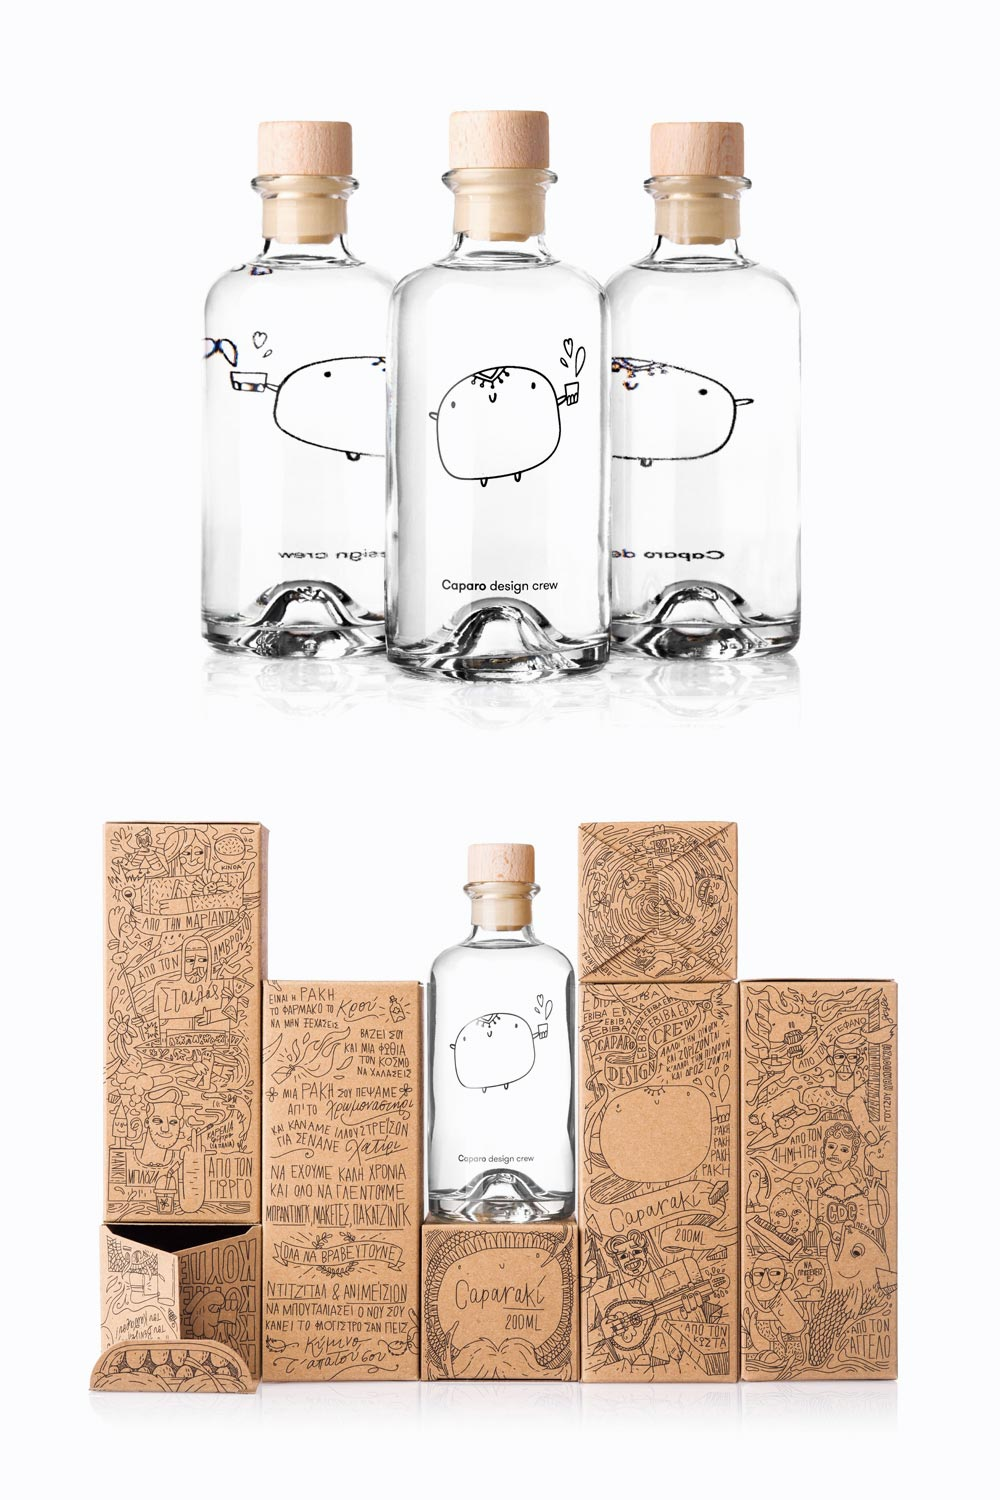 Caparaki Bottle Design